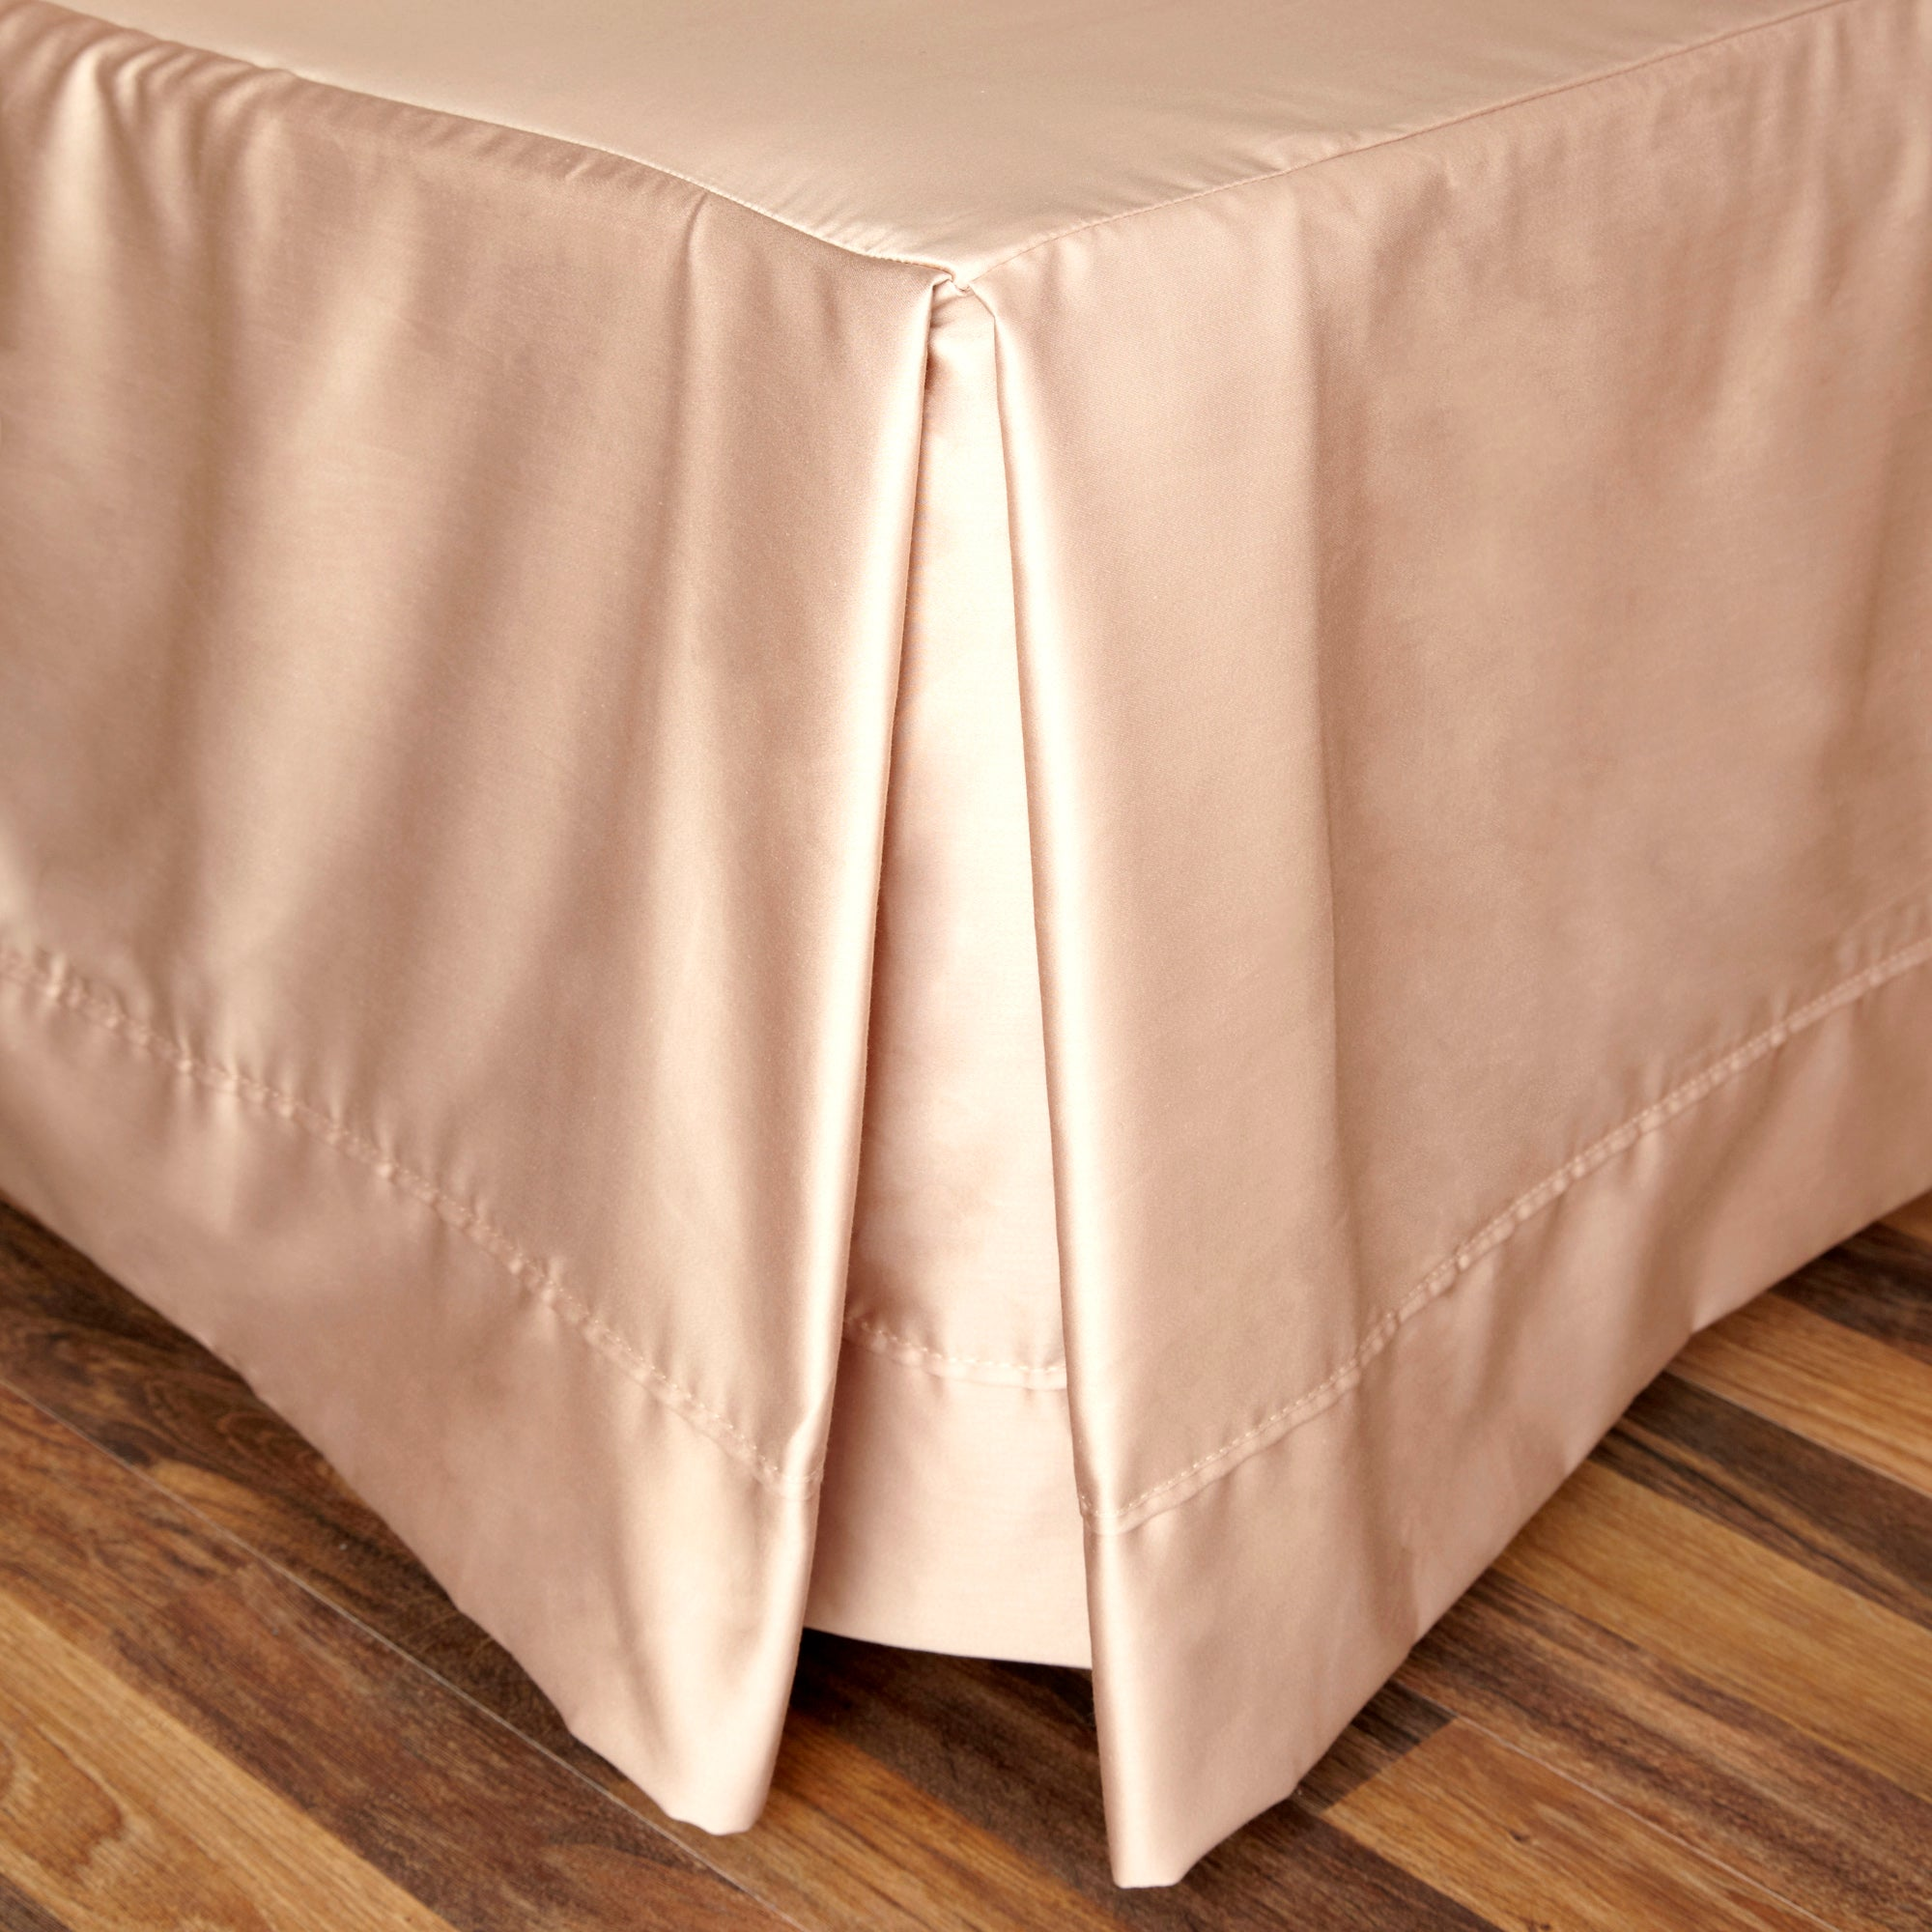 Dorma Camel 350 Thread Count Plain Dye Collection Valance